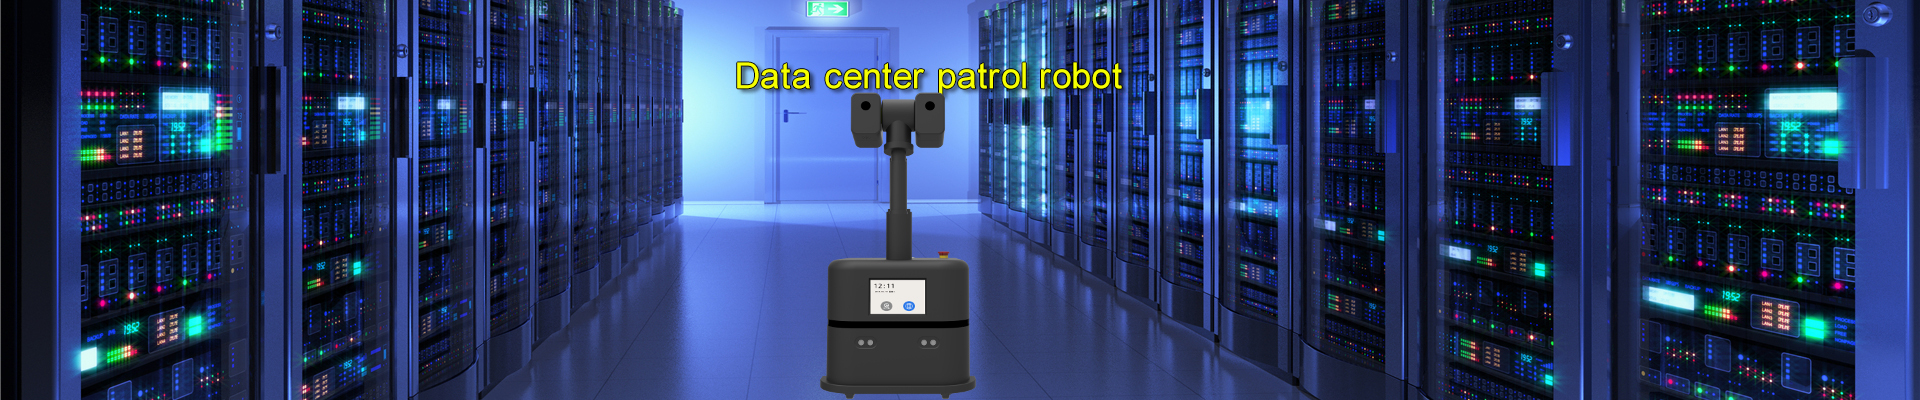 data center patrol robot